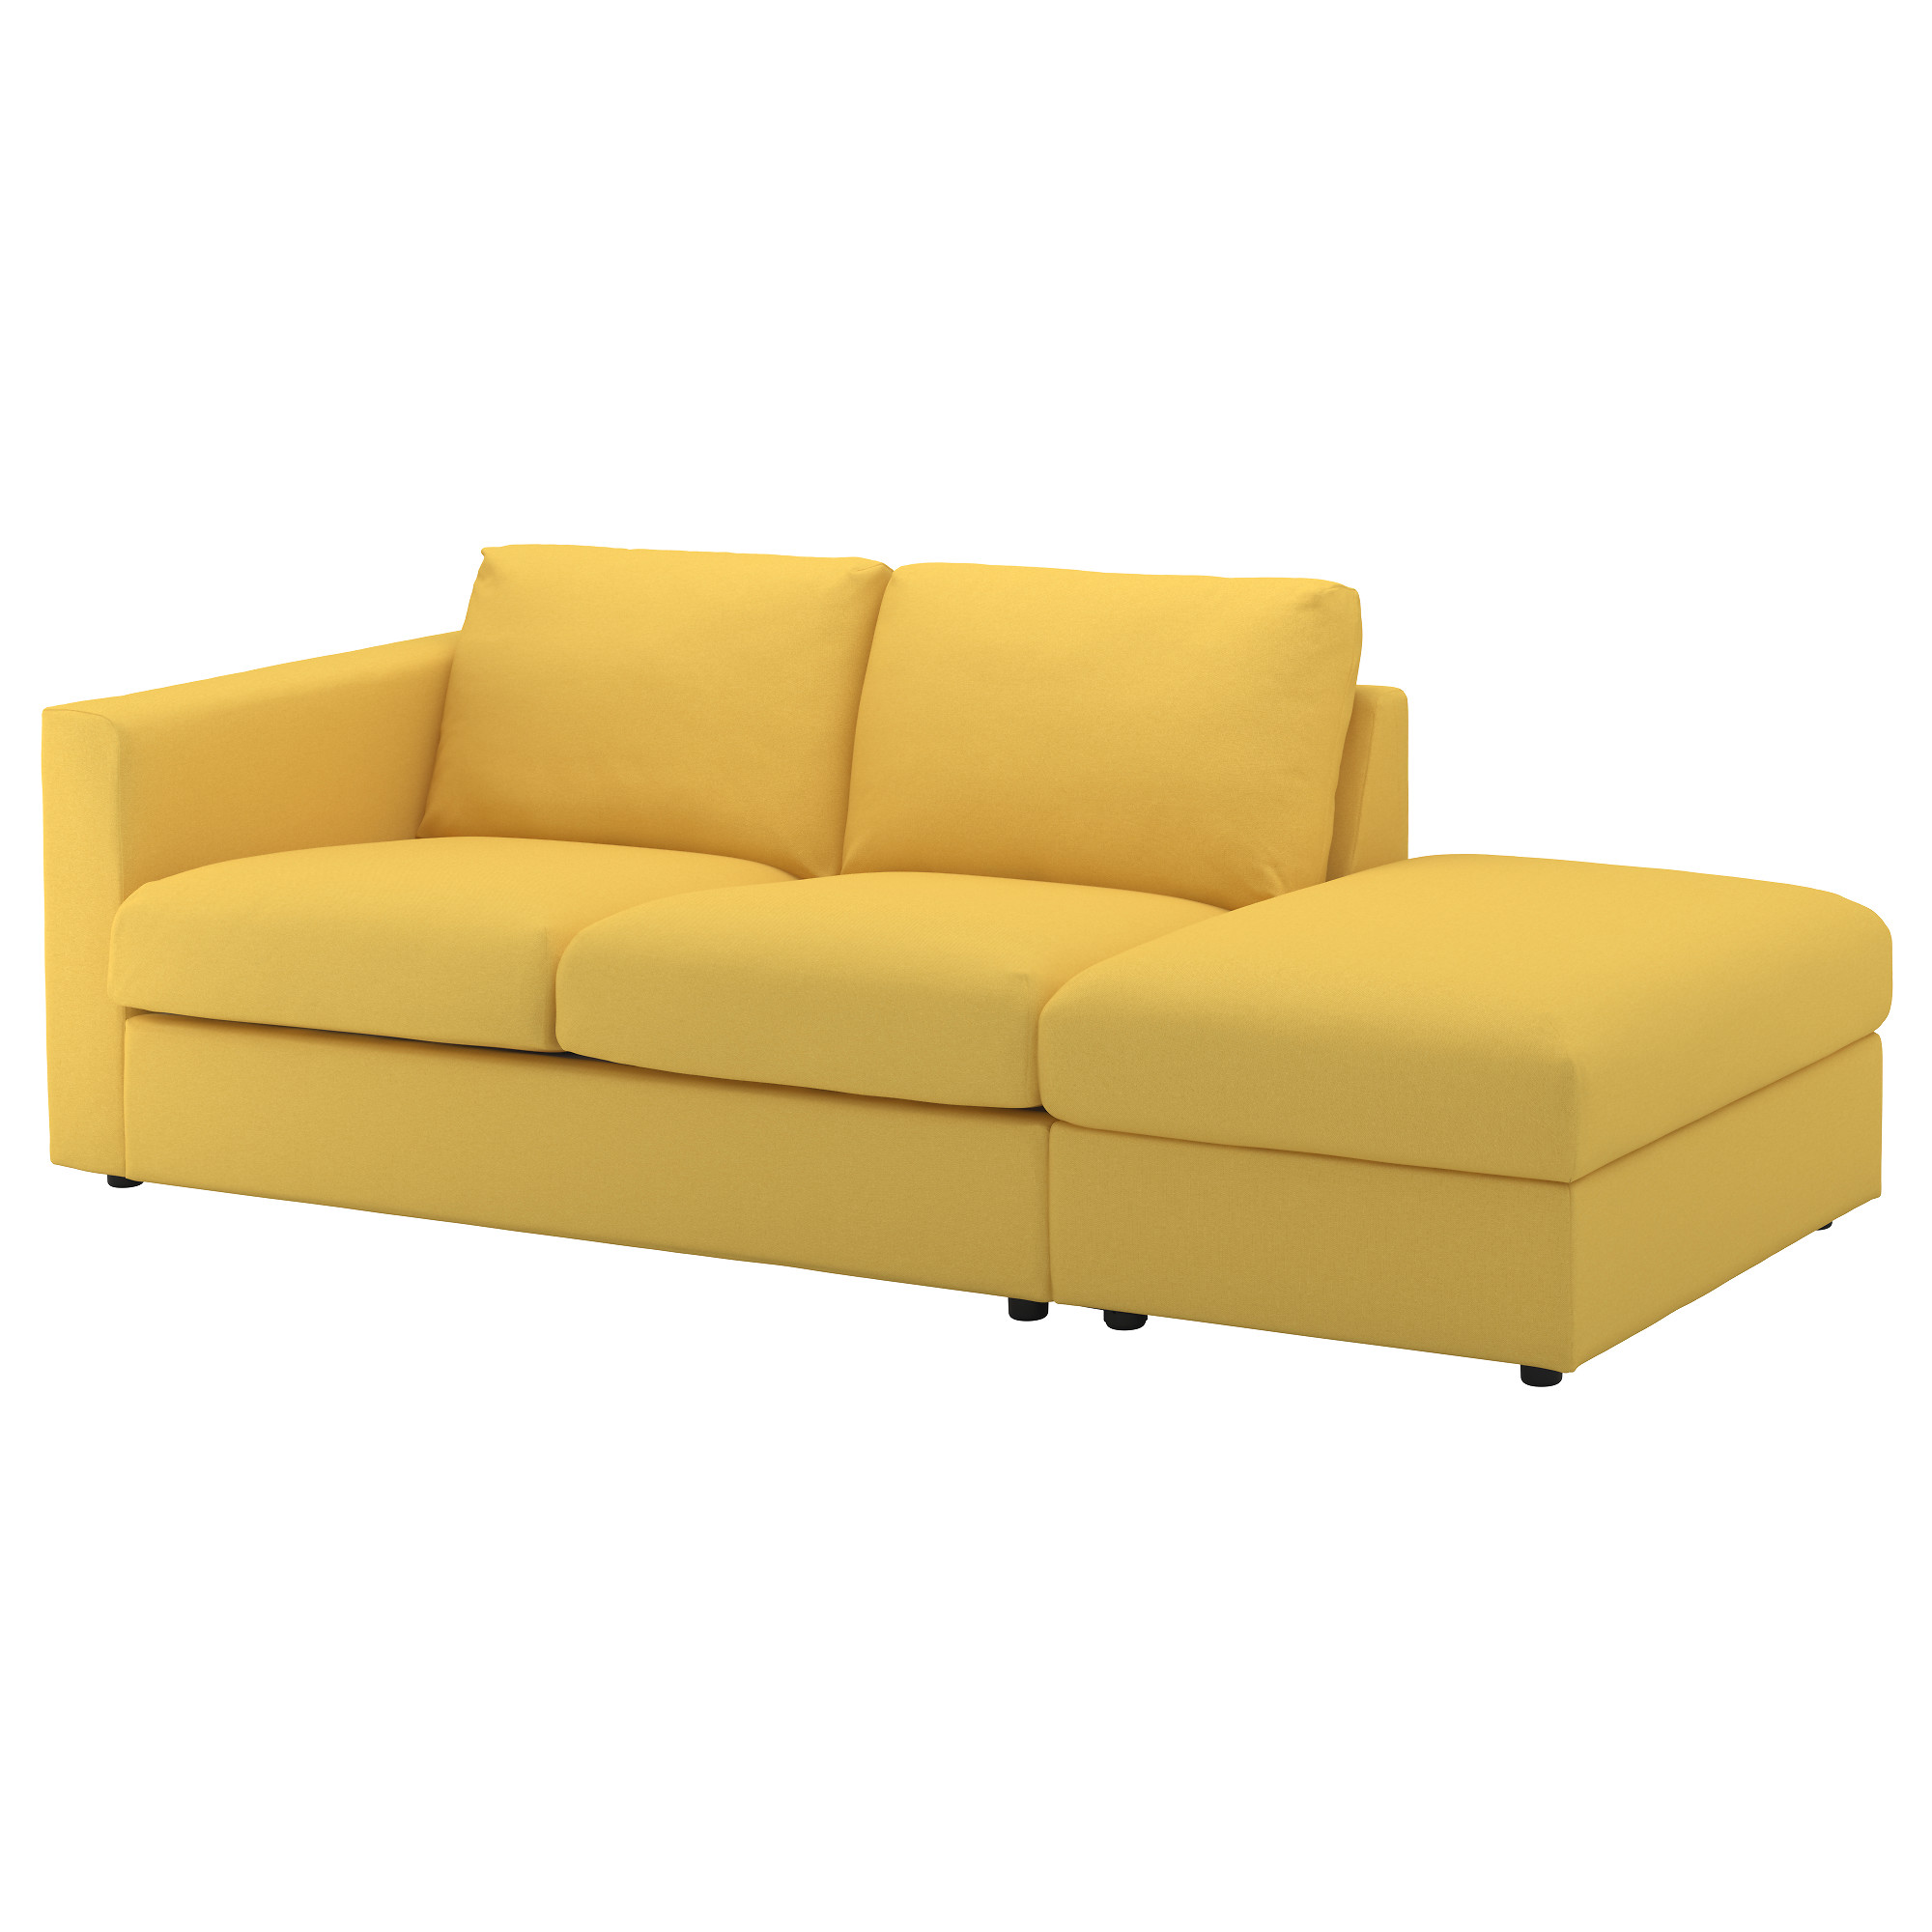 Genial VIMLE Sofa, With Open End, Orrsta Golden Yellow